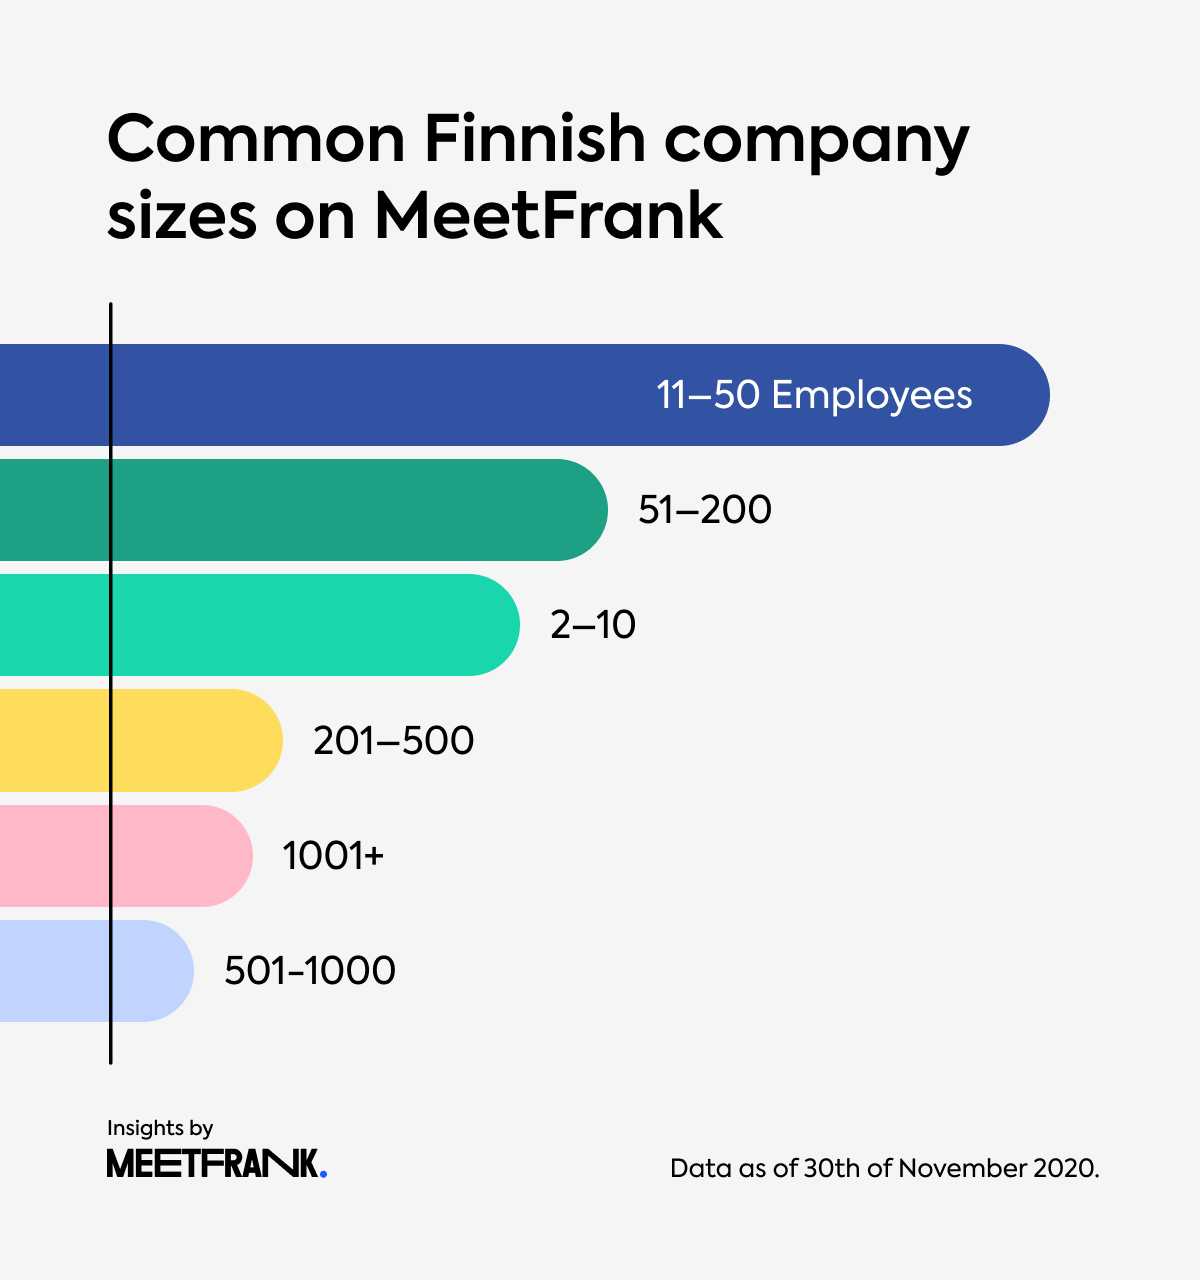 Finnish company size on MeetFrank